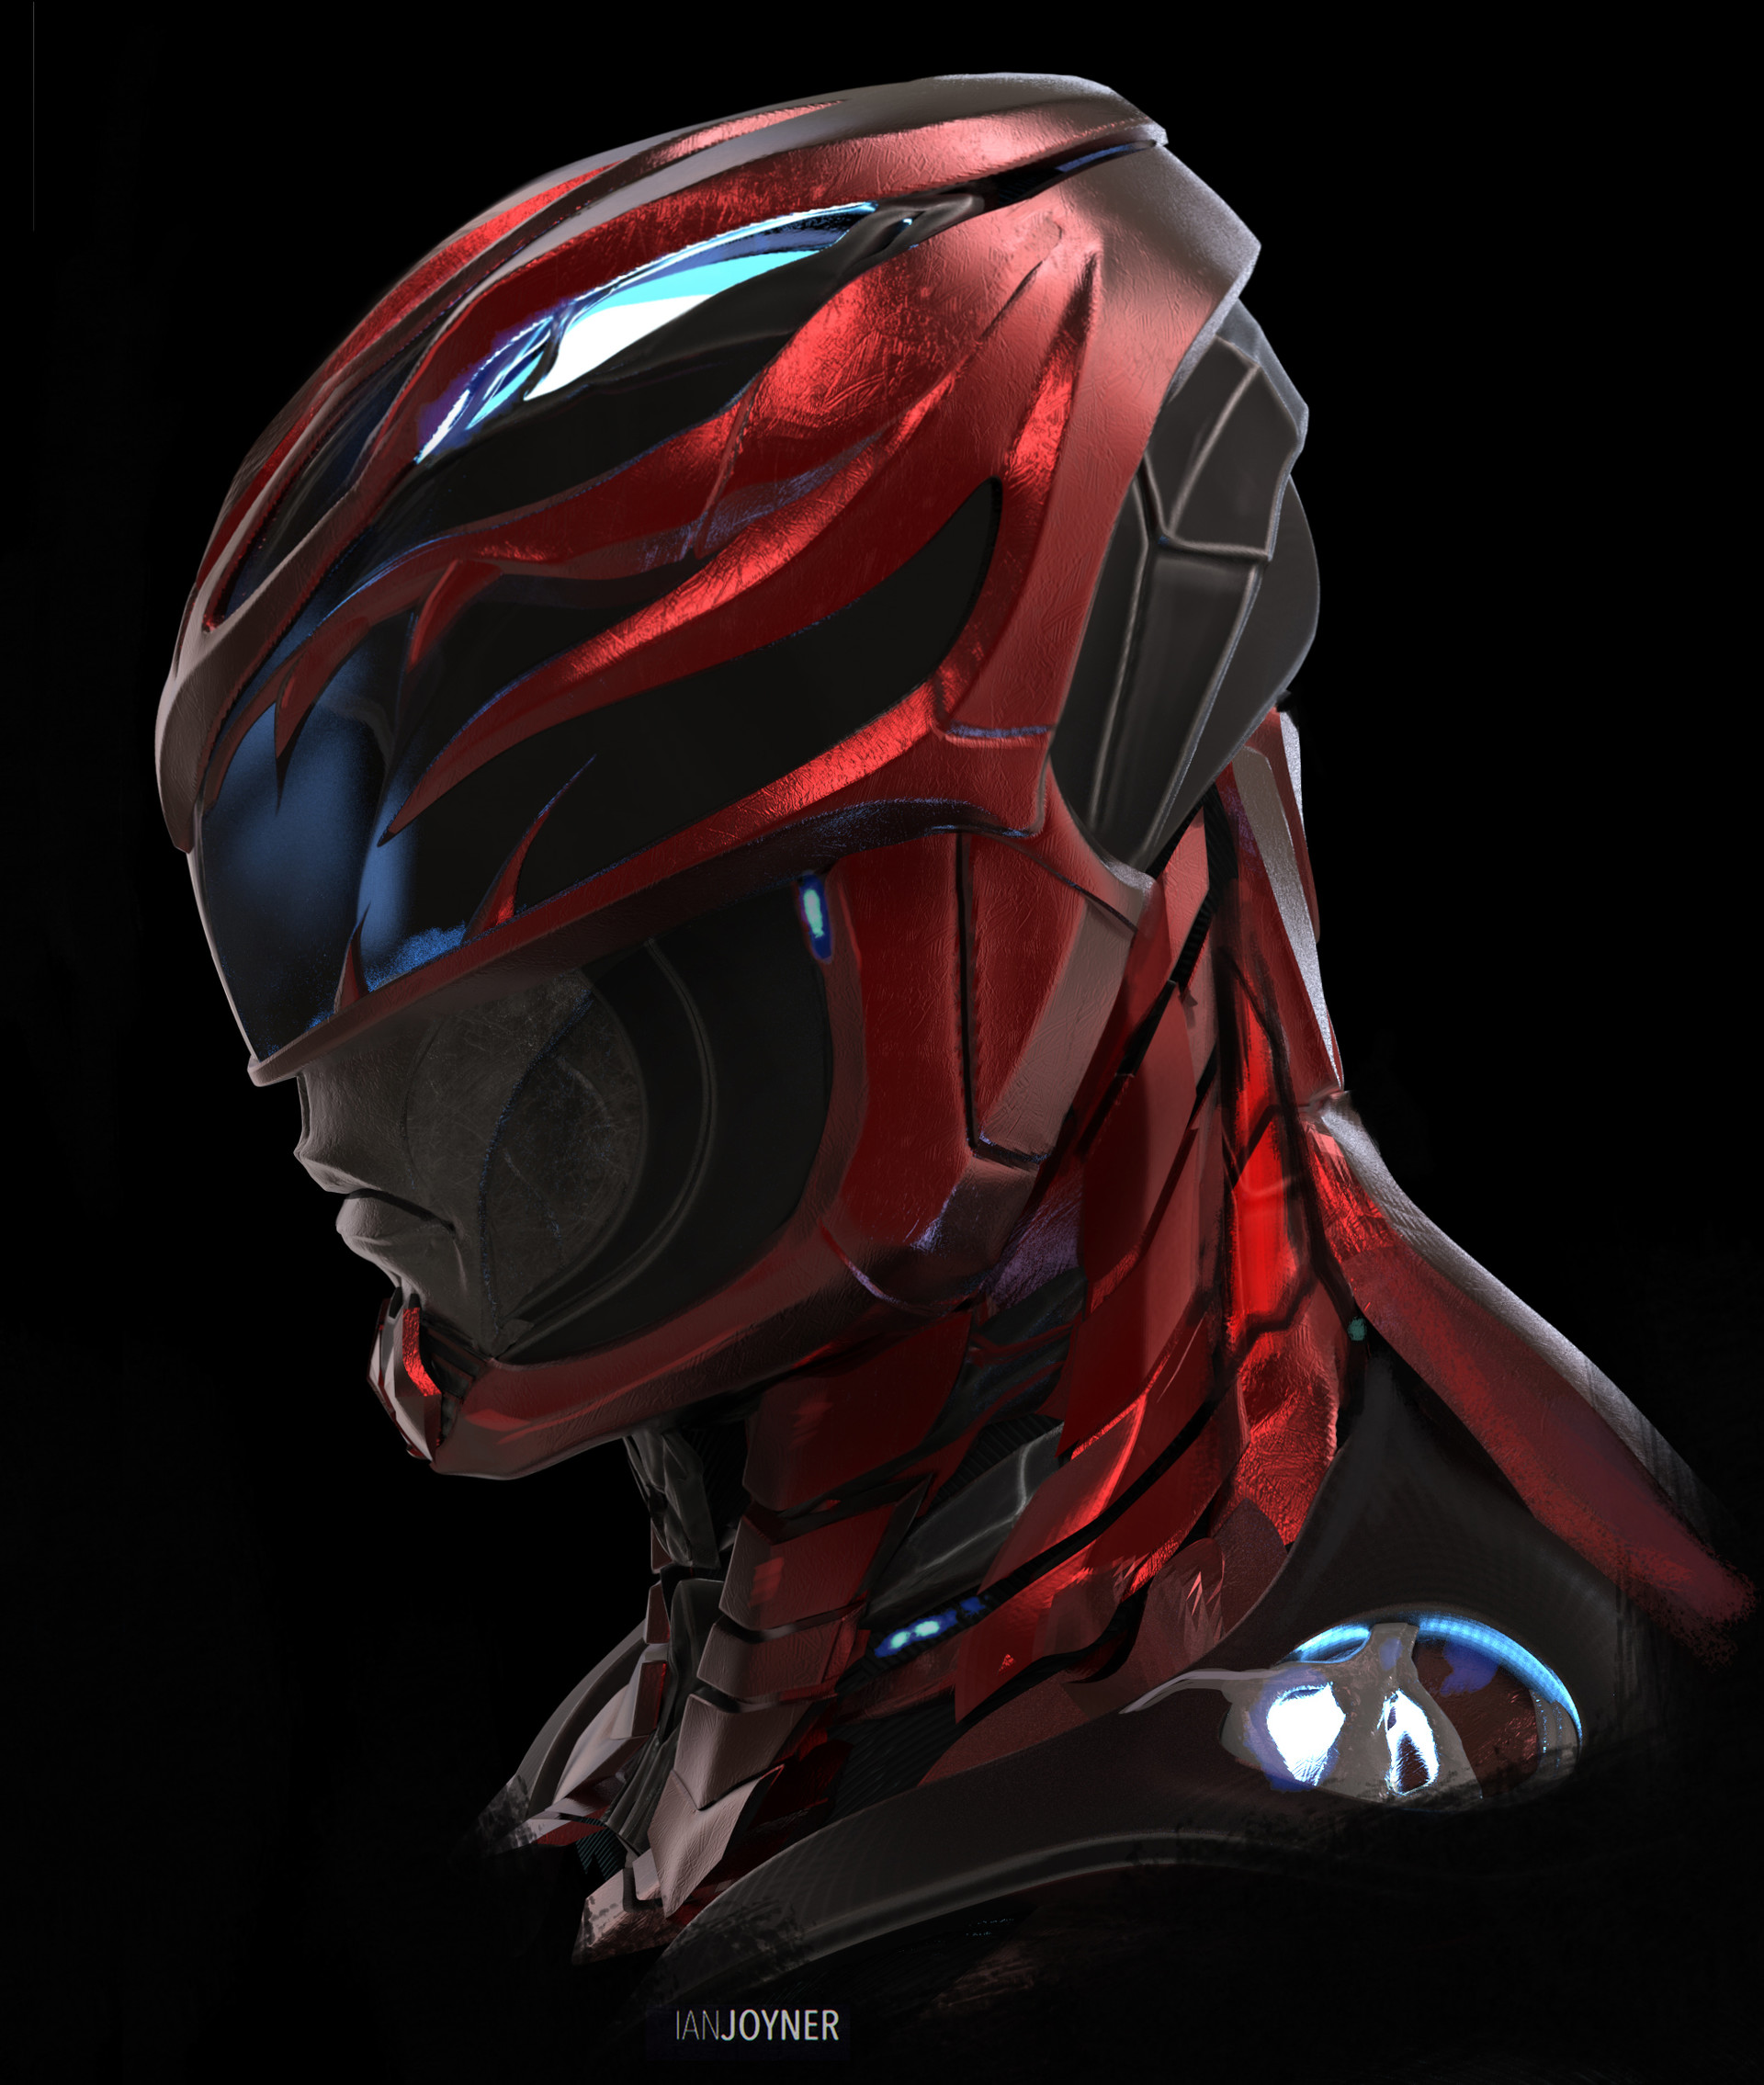 Ian joyner red ranger power rangers for Helm design